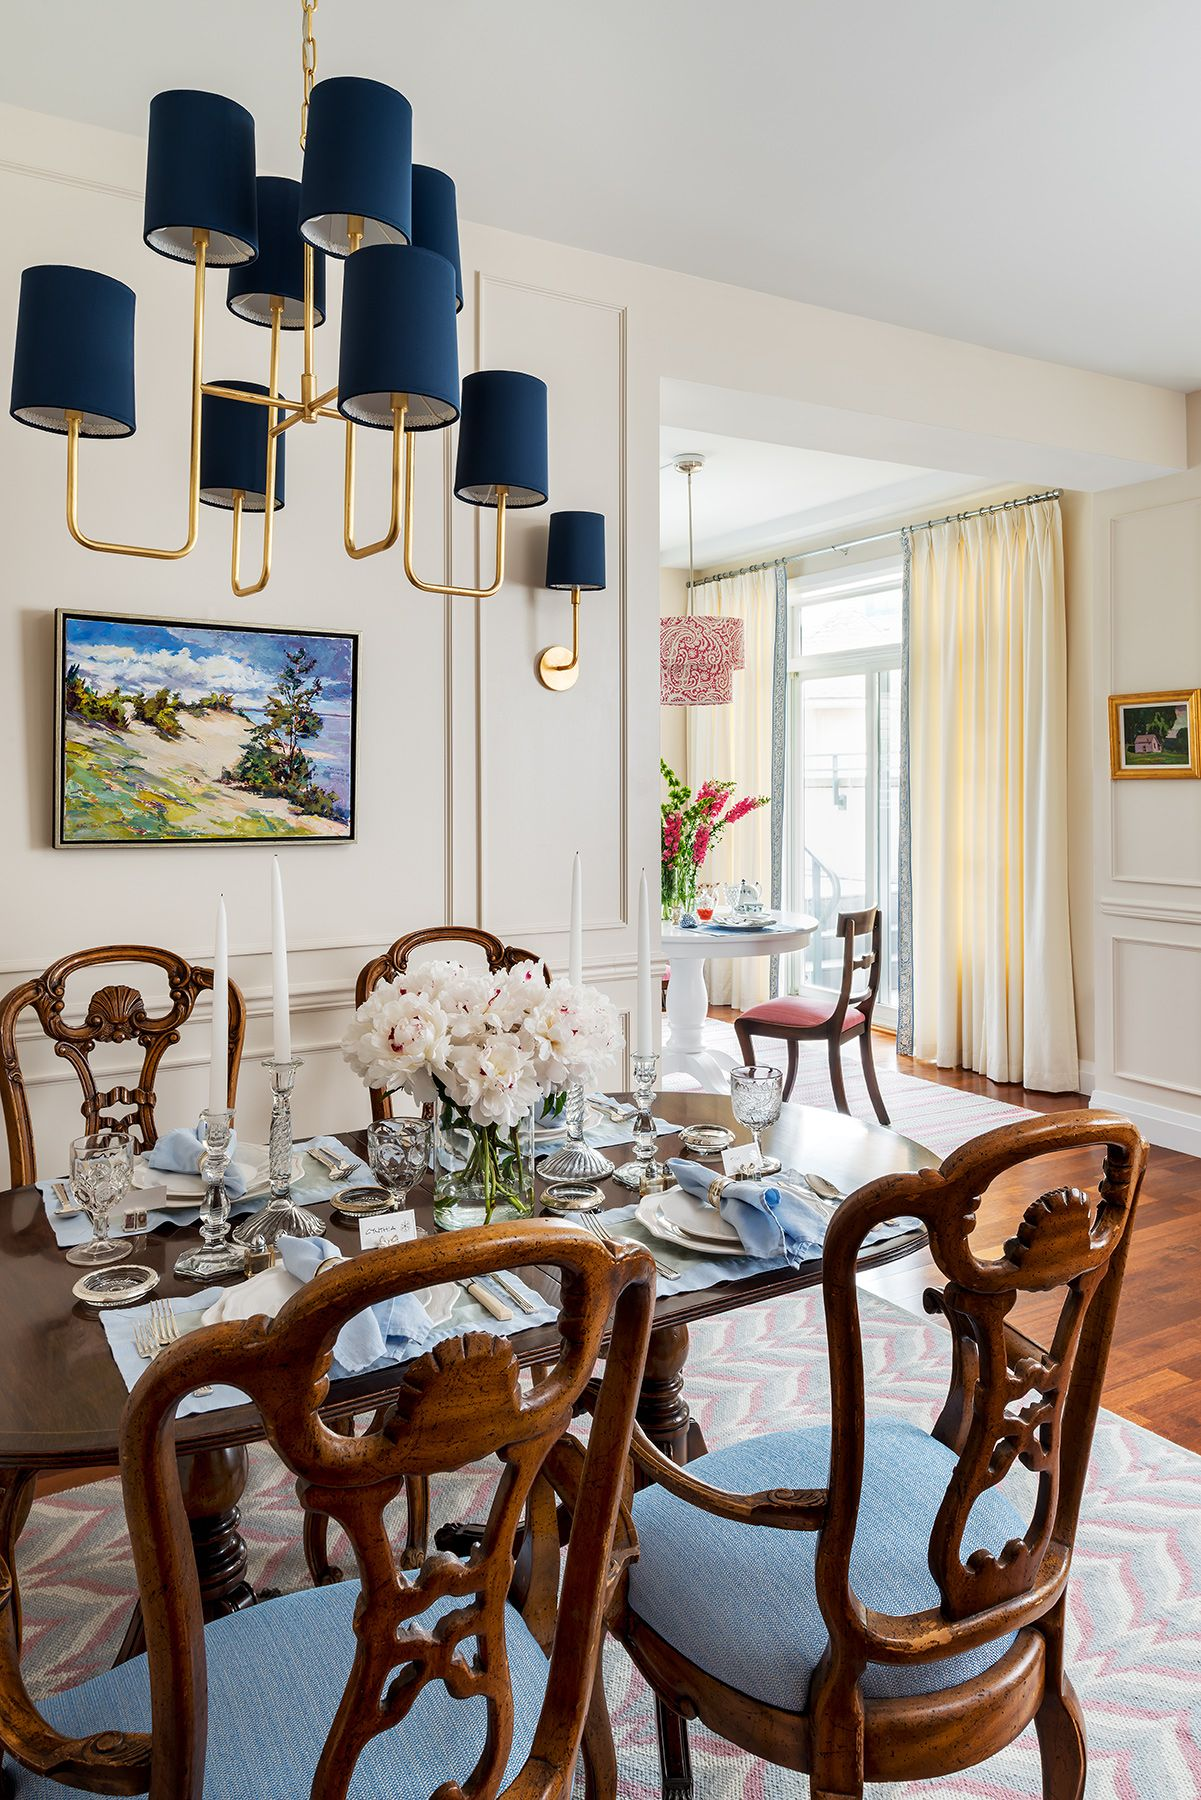 Residential Interior Project Has Modern Yet Vintage Take: Traditional Dining Room Cynthia Ferguson Designs